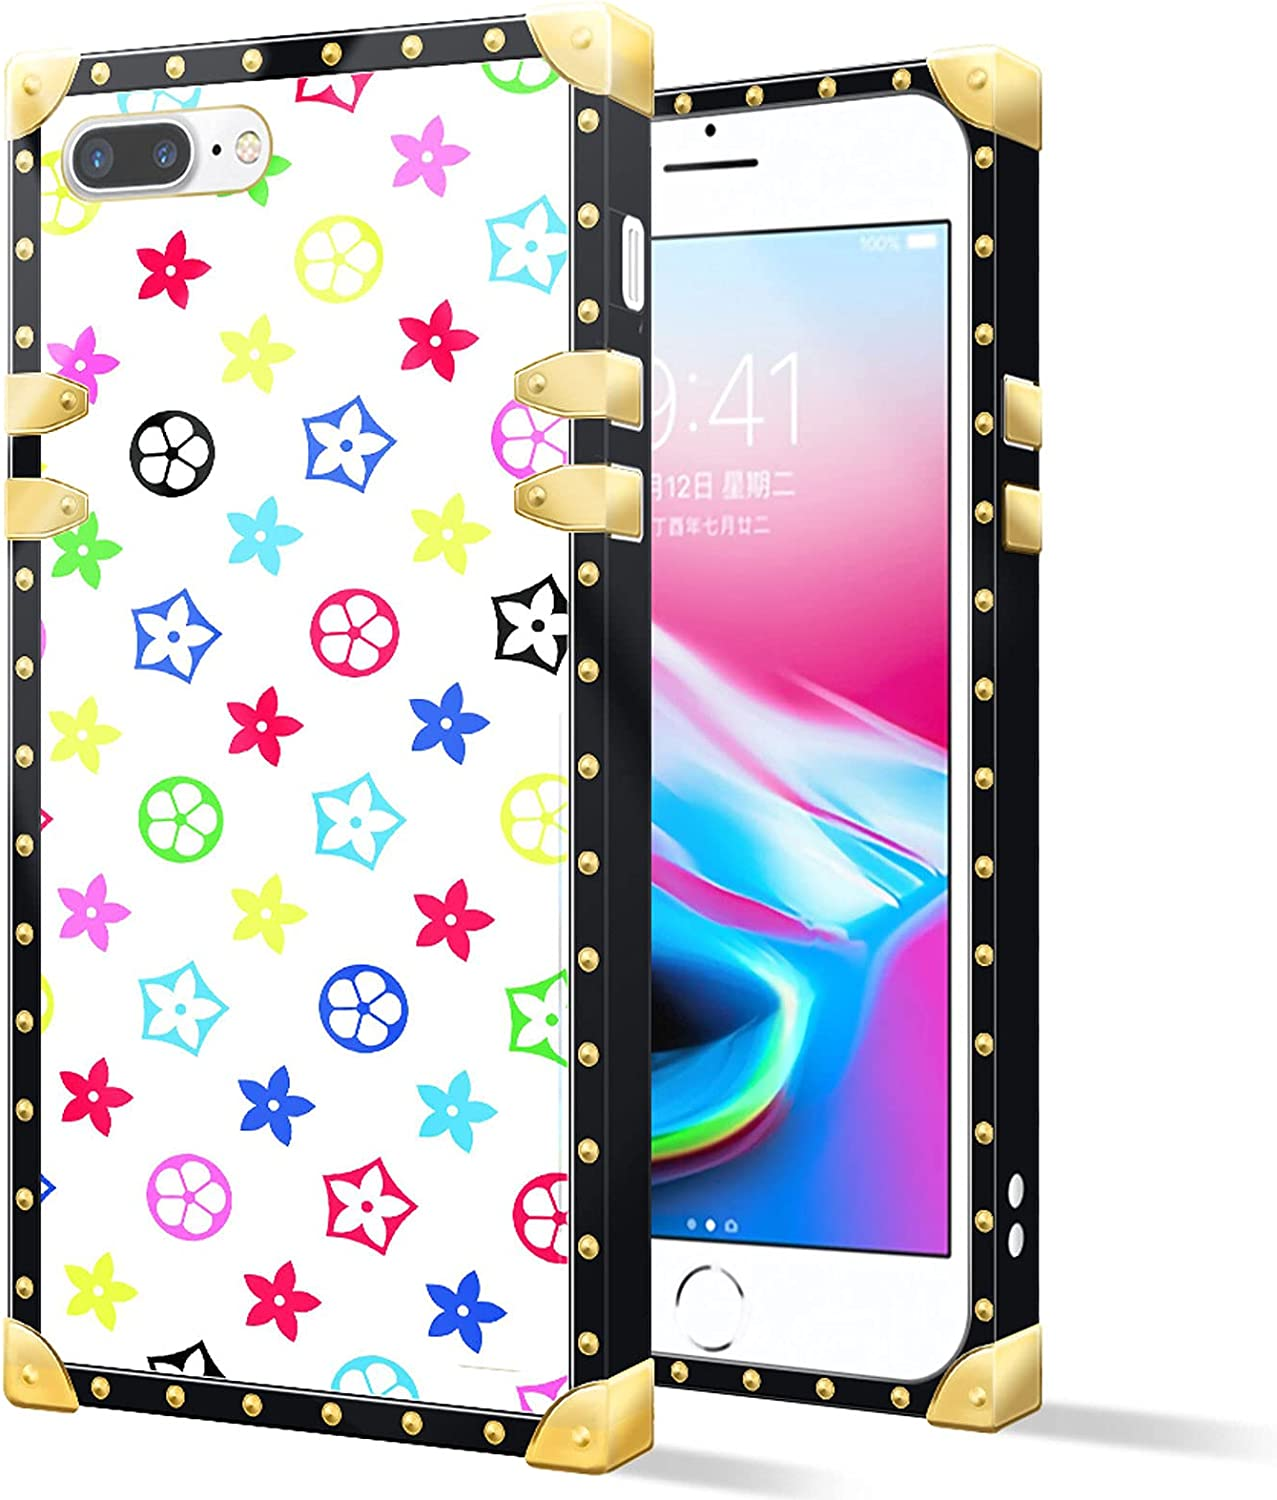 Square Case Compatible iPhone 8 Plus,Colored Flowers White Luxury Elegant Soft TPU Shockproof Protective Metal Decoration Corner Back Cover Case iPhone 7/8 Plus Case 5.5 Inch